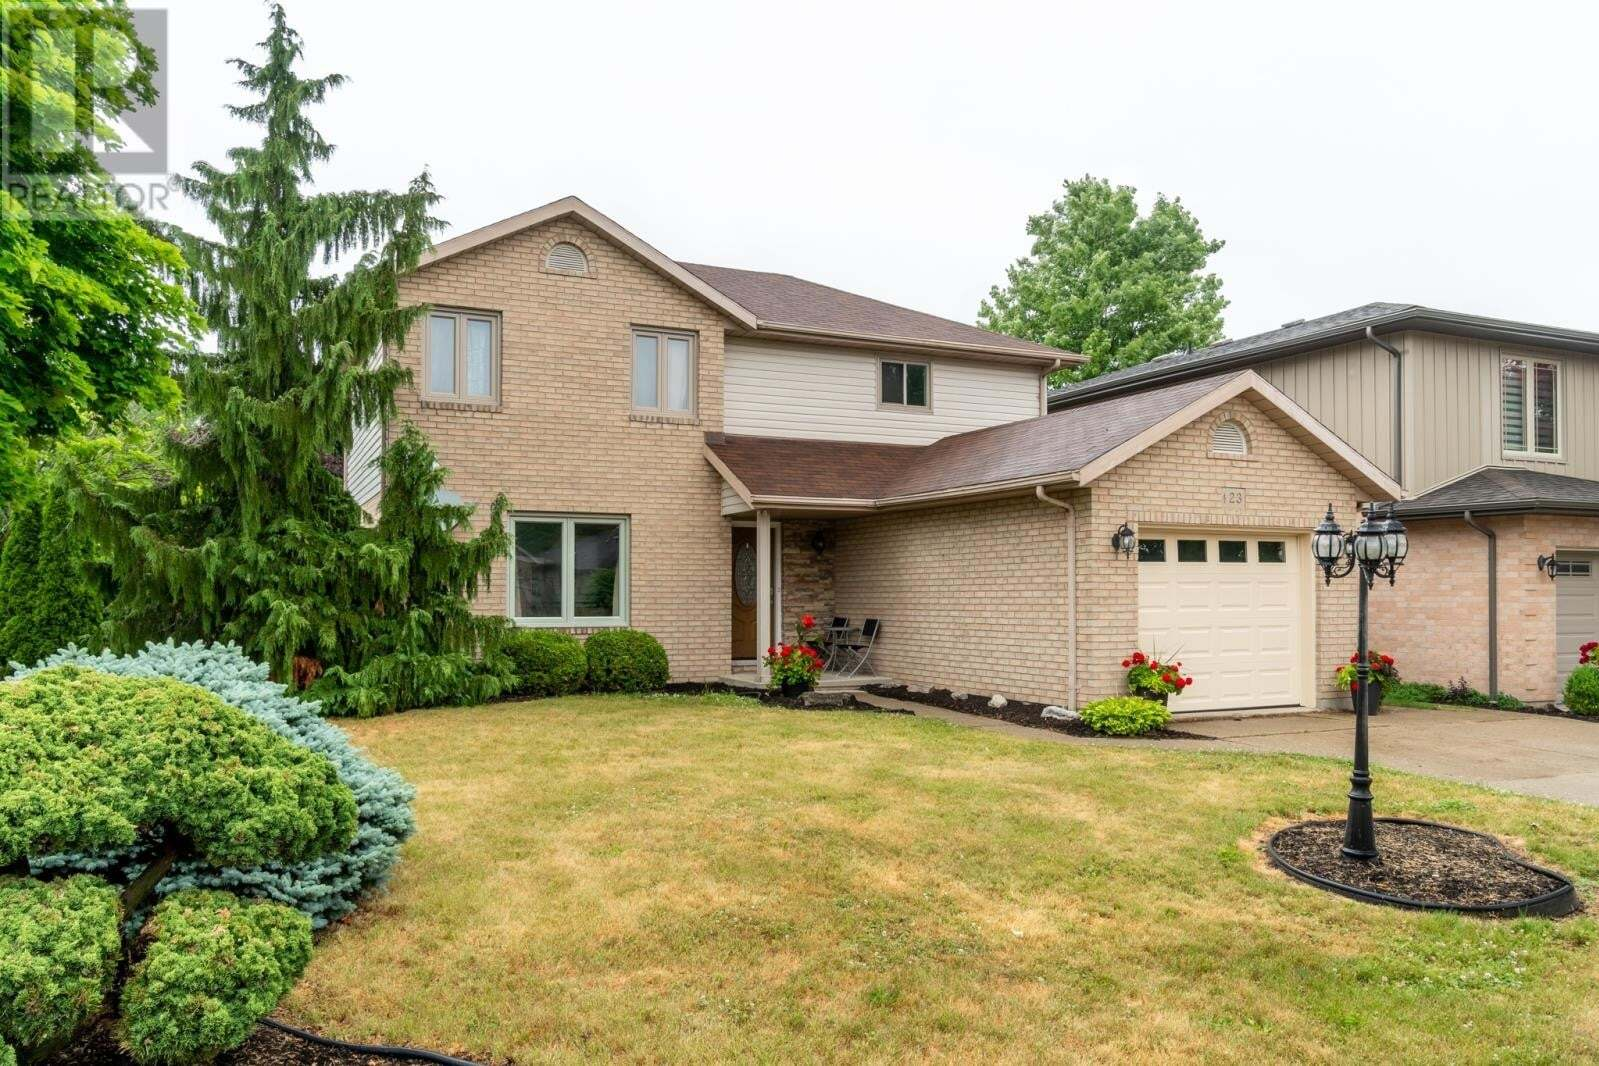 House for sale at 23 White Birch Tr Chatham Ontario - MLS: 20007443